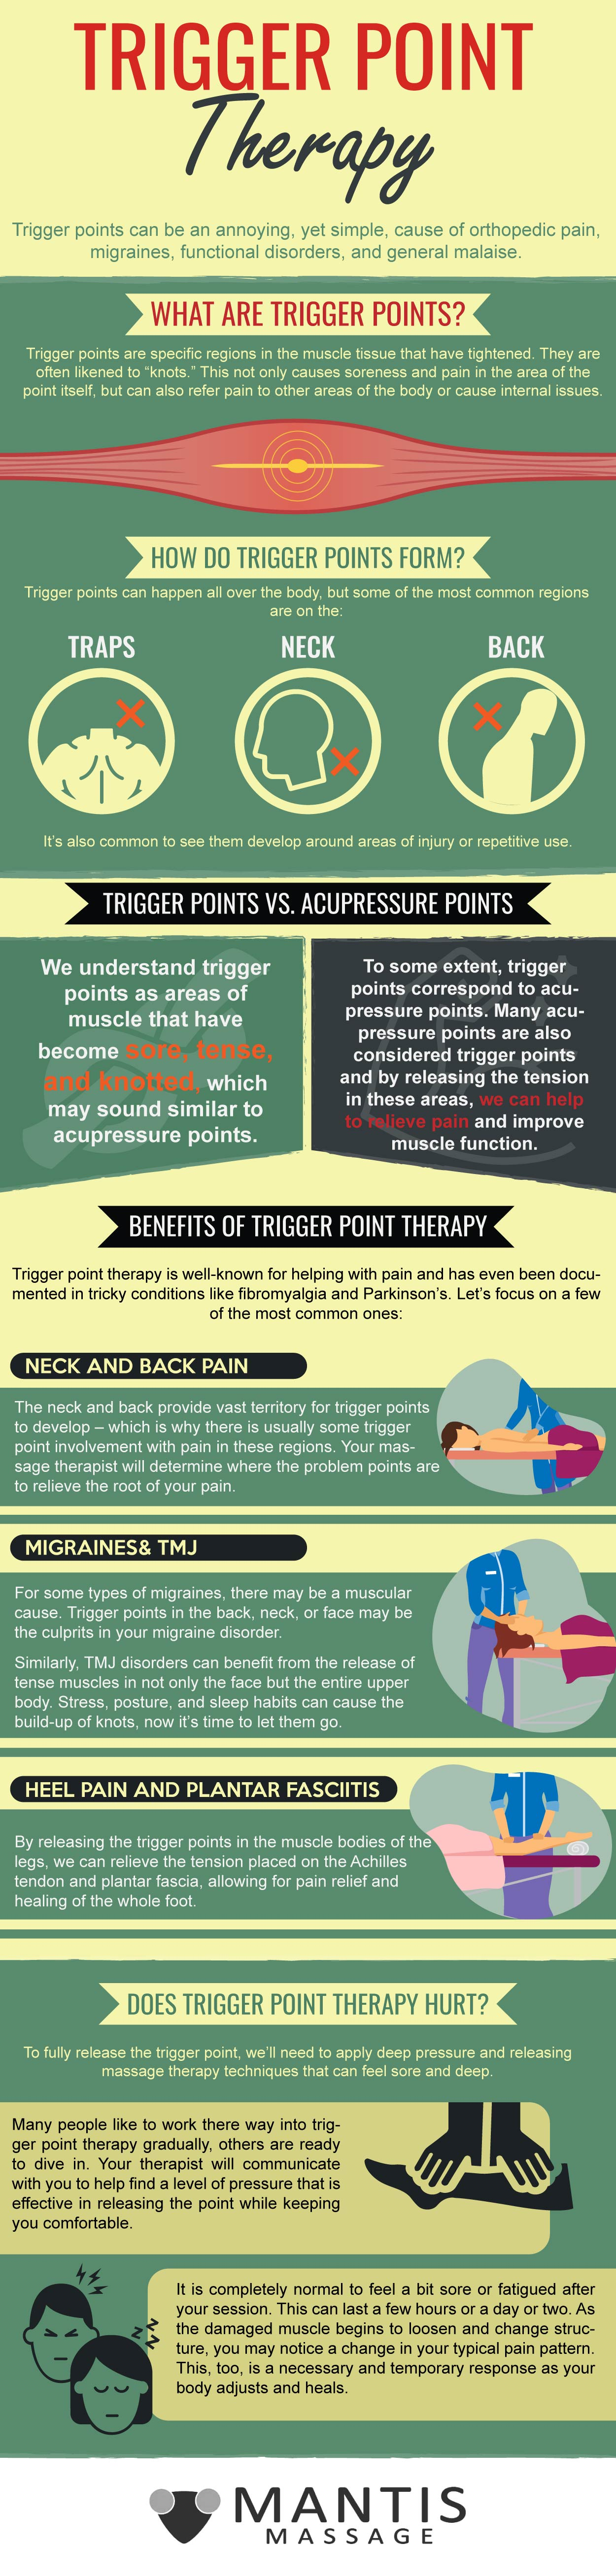 Mantis Massage Trigger Point Therapy.jpg